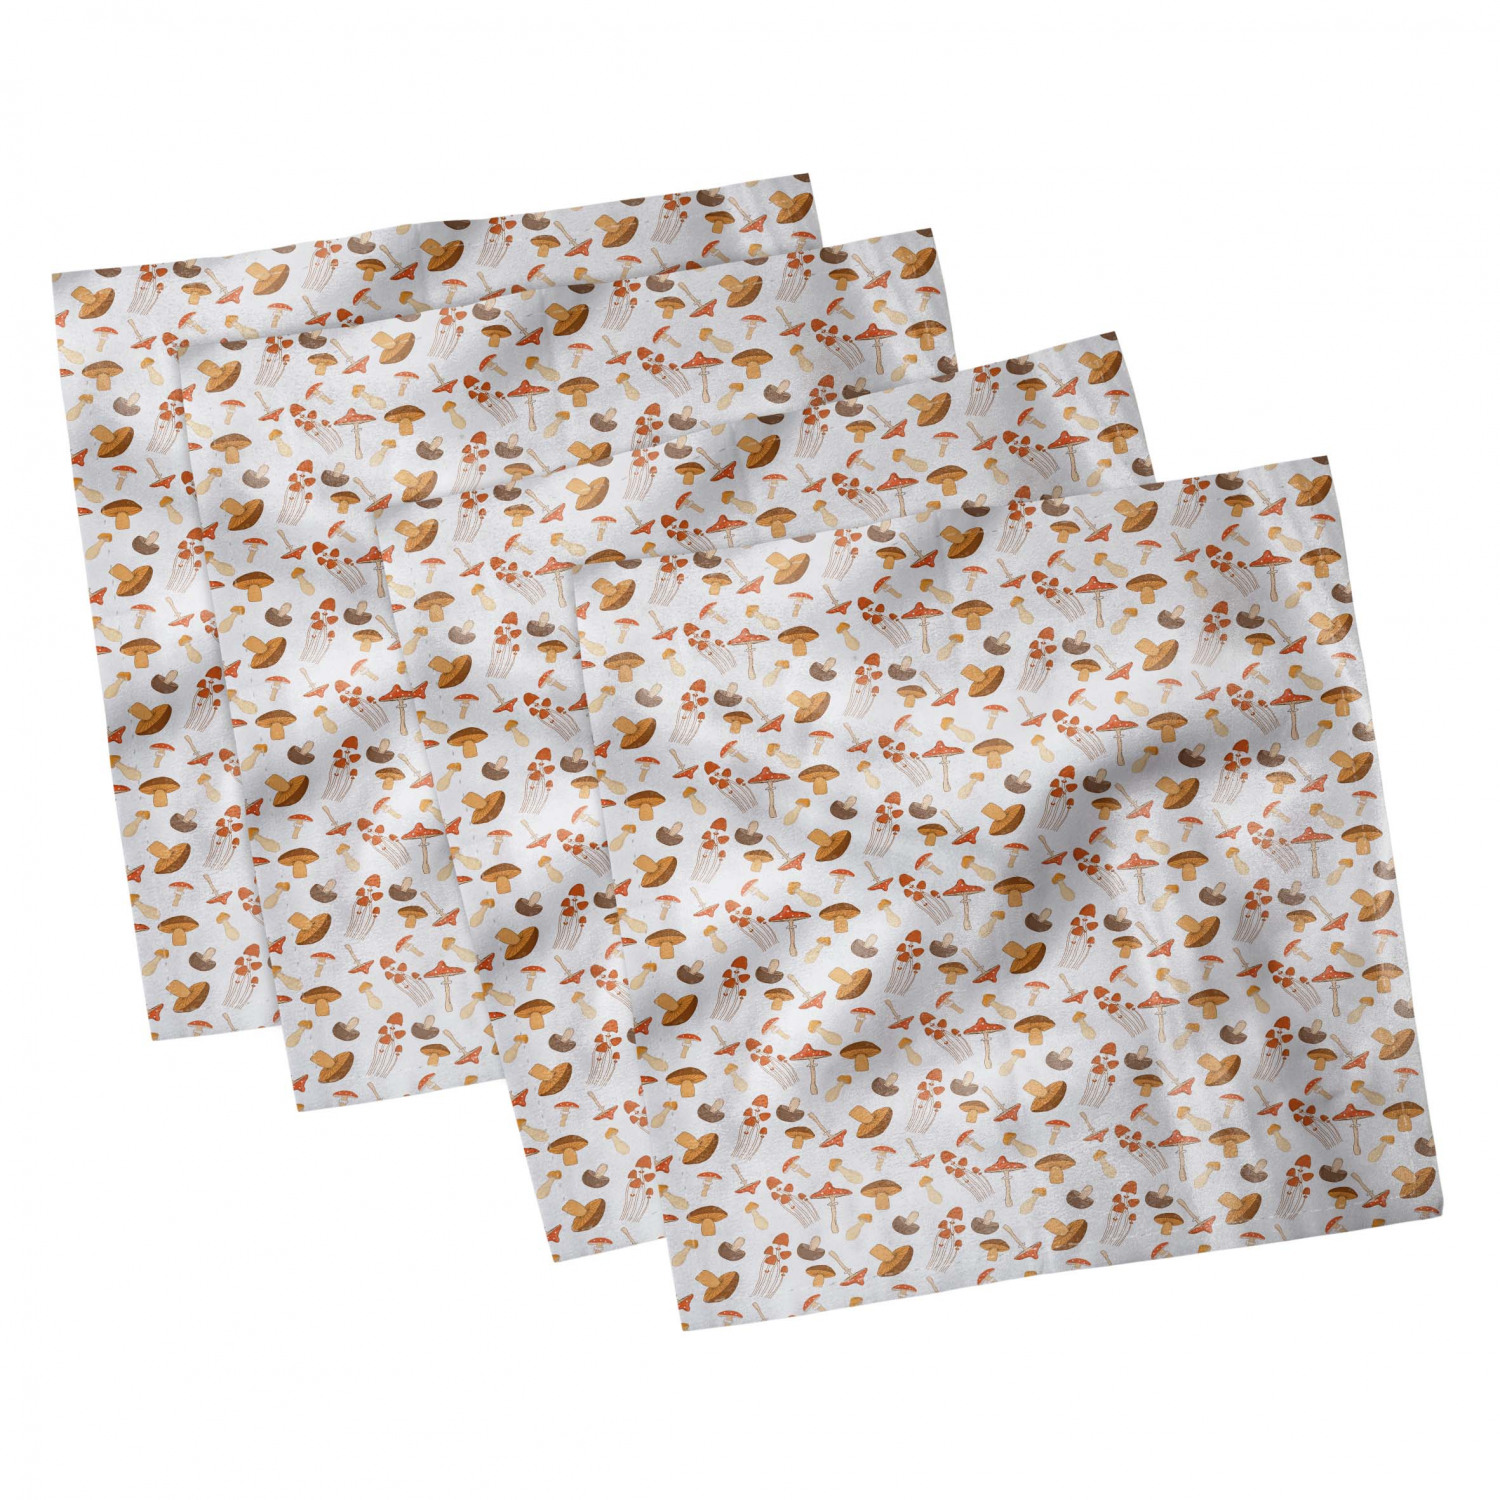 thumbnail 19 - Ambesonne-Autumn-Fall-Decorative-Satin-Napkins-Set-of-4-Party-Dinner-Fabric